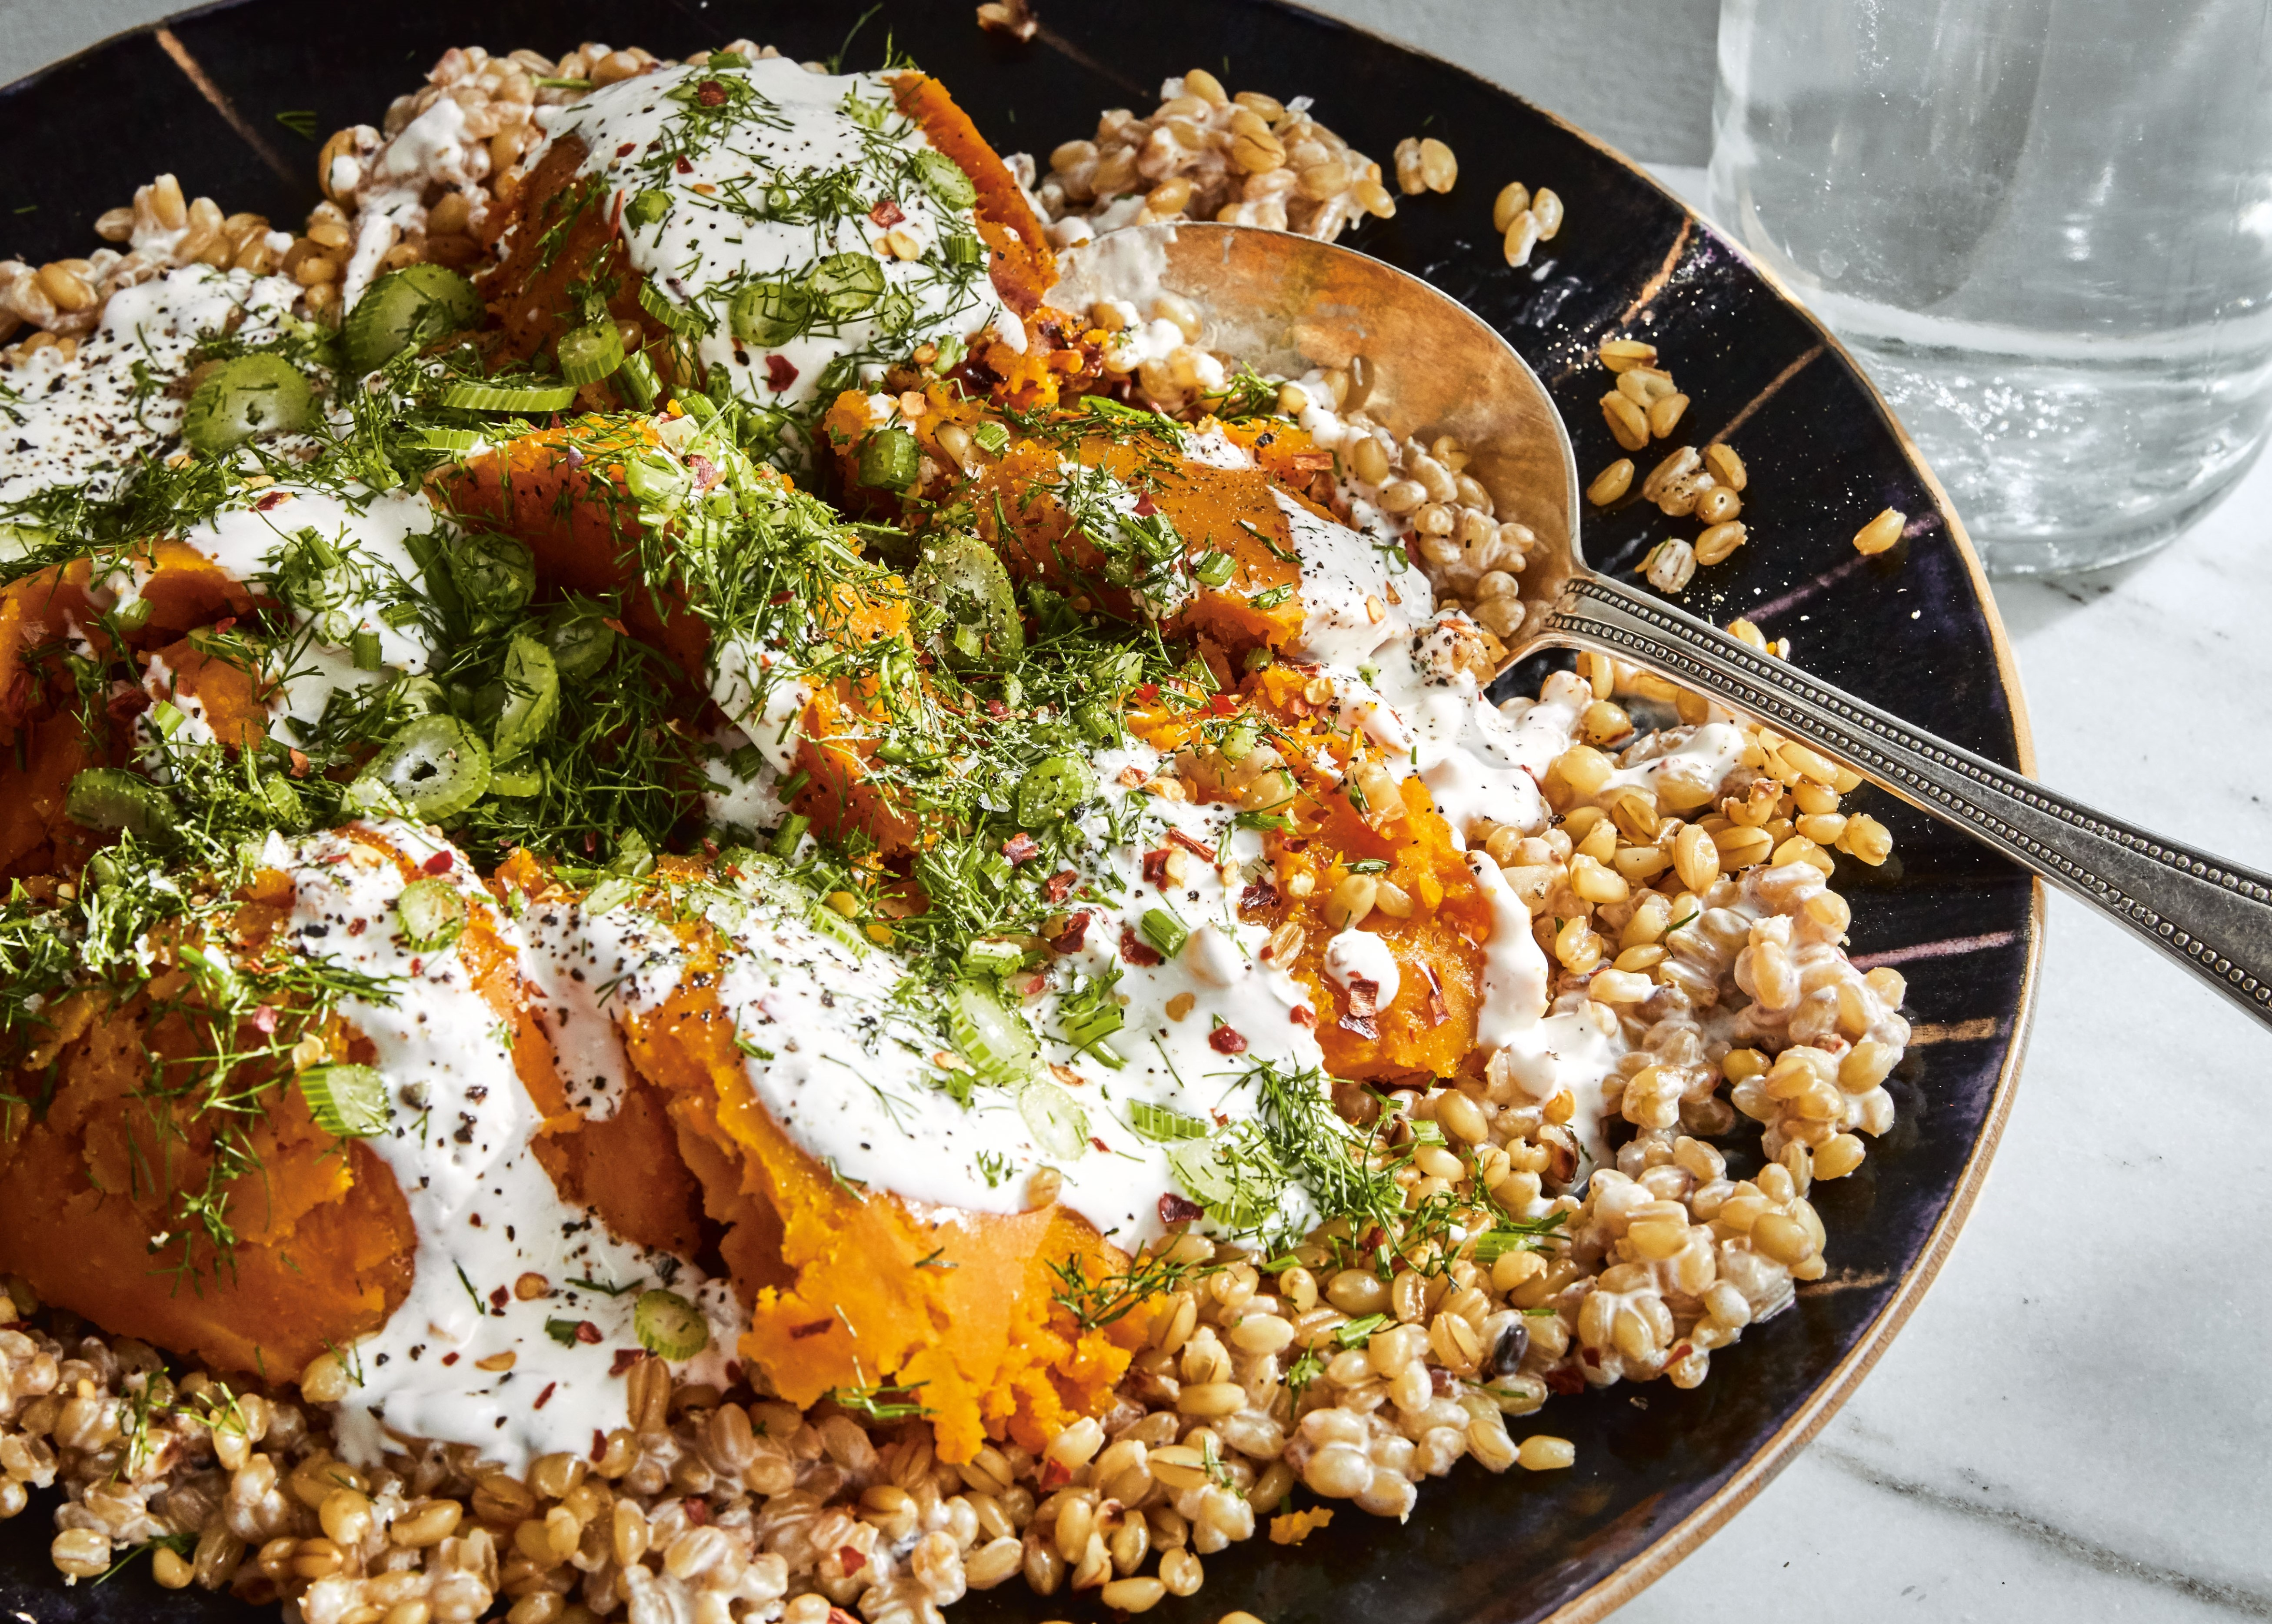 Grains and roasted squash with spicy buttermilk dressing